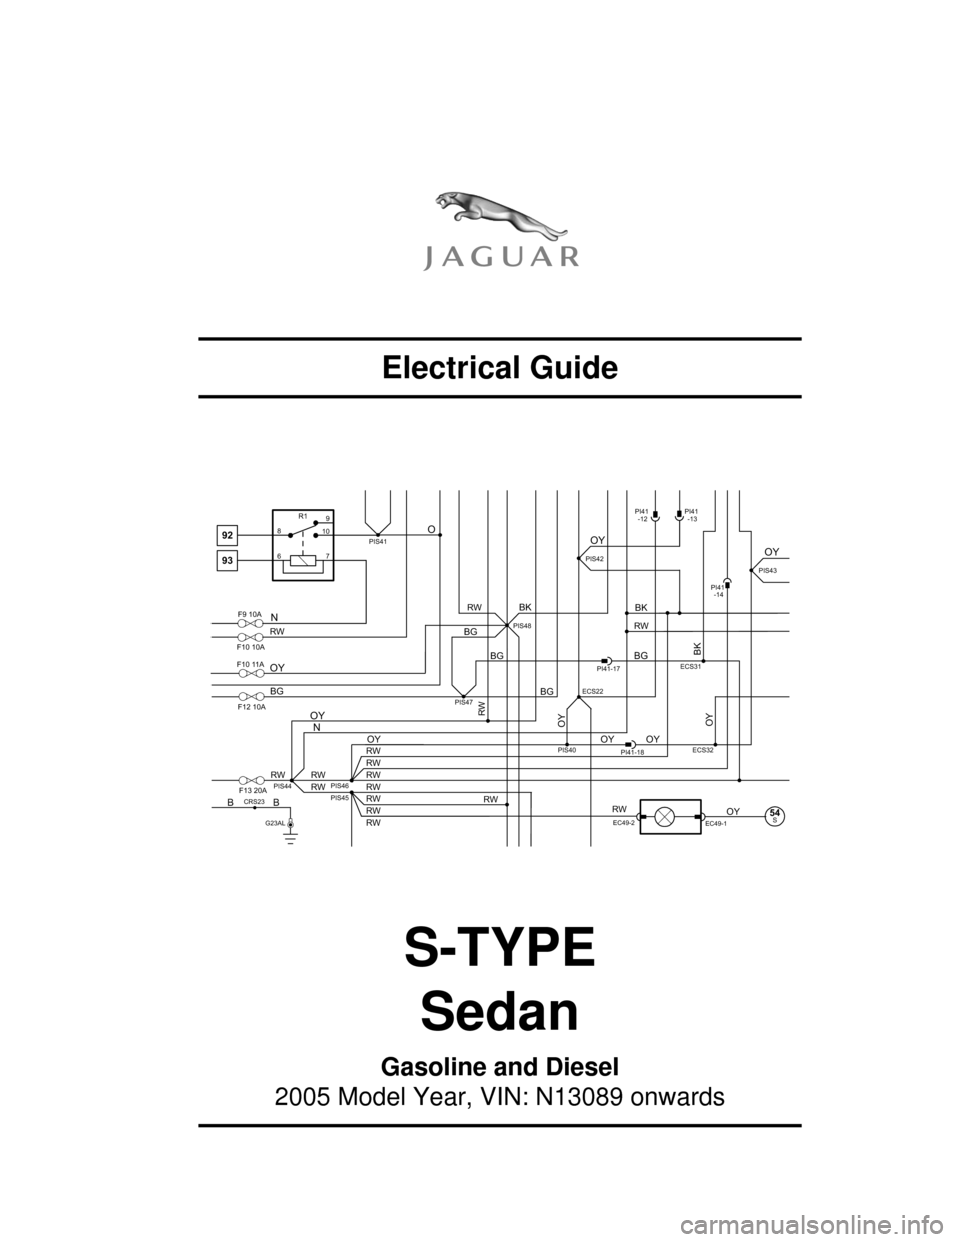 JAGUAR S TYPE 2005 1.G Electrical Manual, Page 1